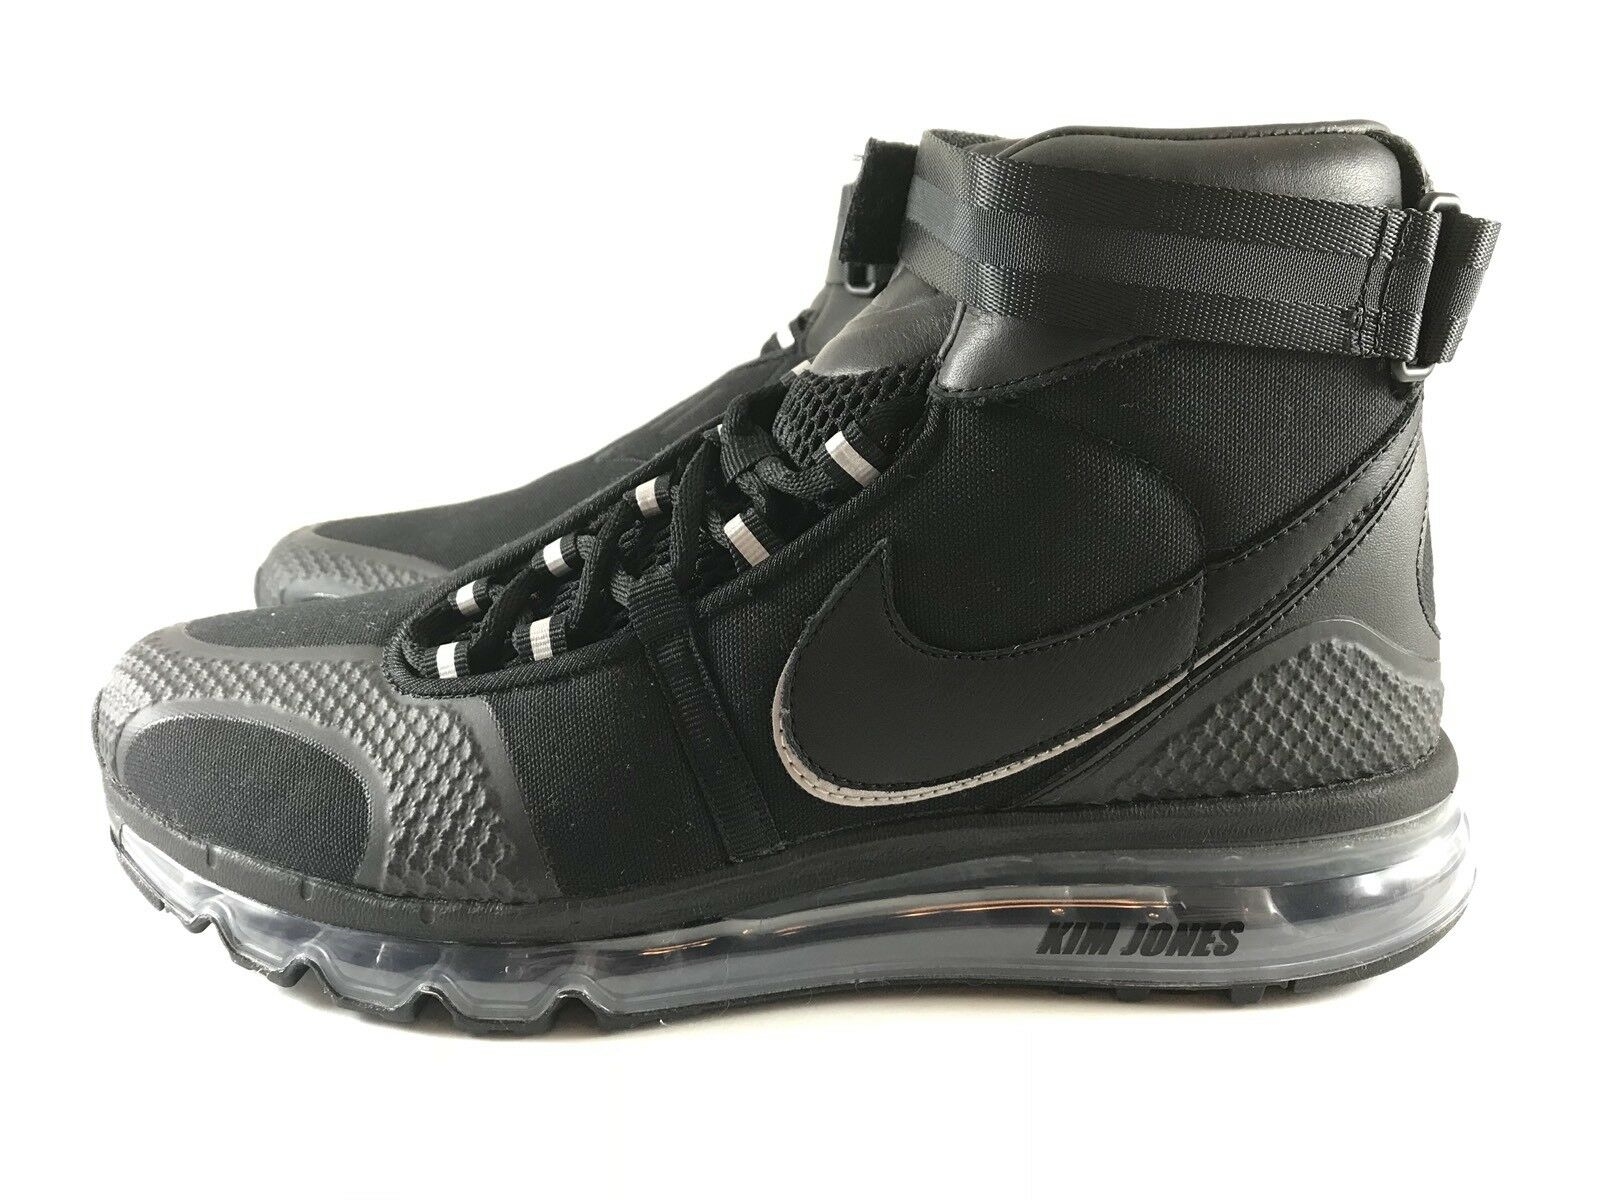 b5acdee29c NIKE AIR MAX HI KJ Kim Jones Black AO2313 Mens size 9 360 001  ntalgh7275-Athletic Shoes